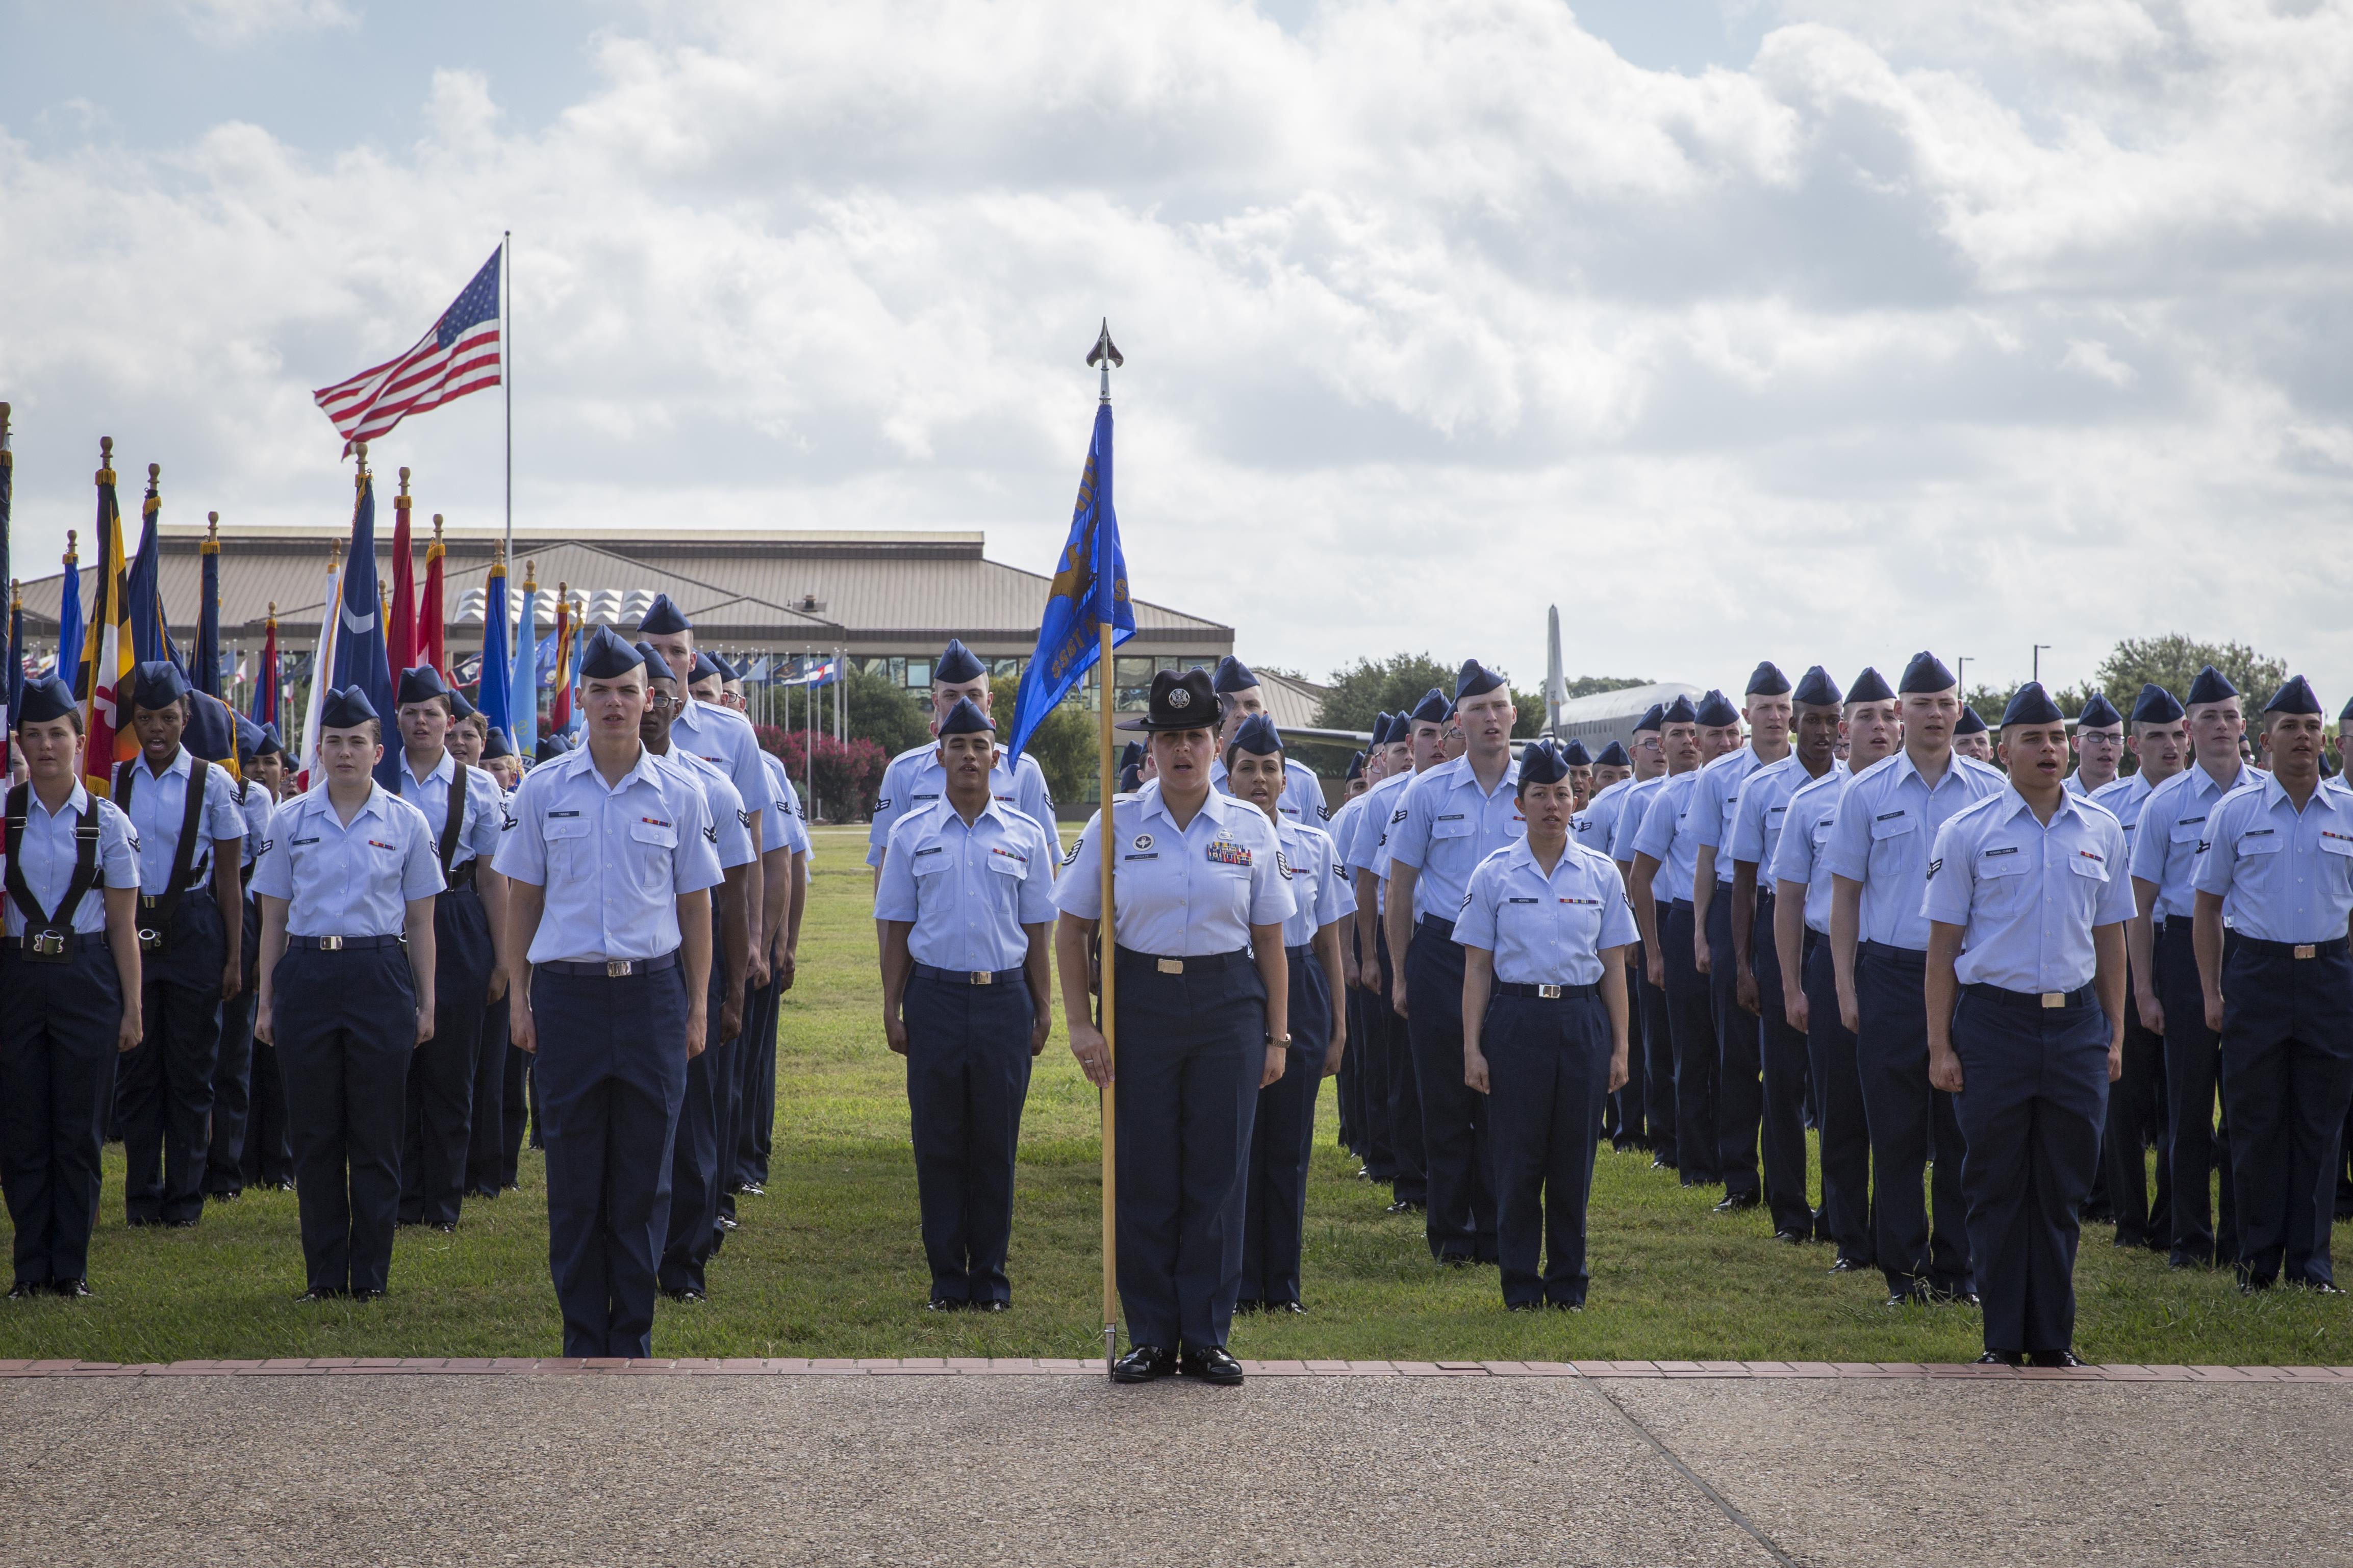 Air Force BMT implements gender-integrated Heritage Flights